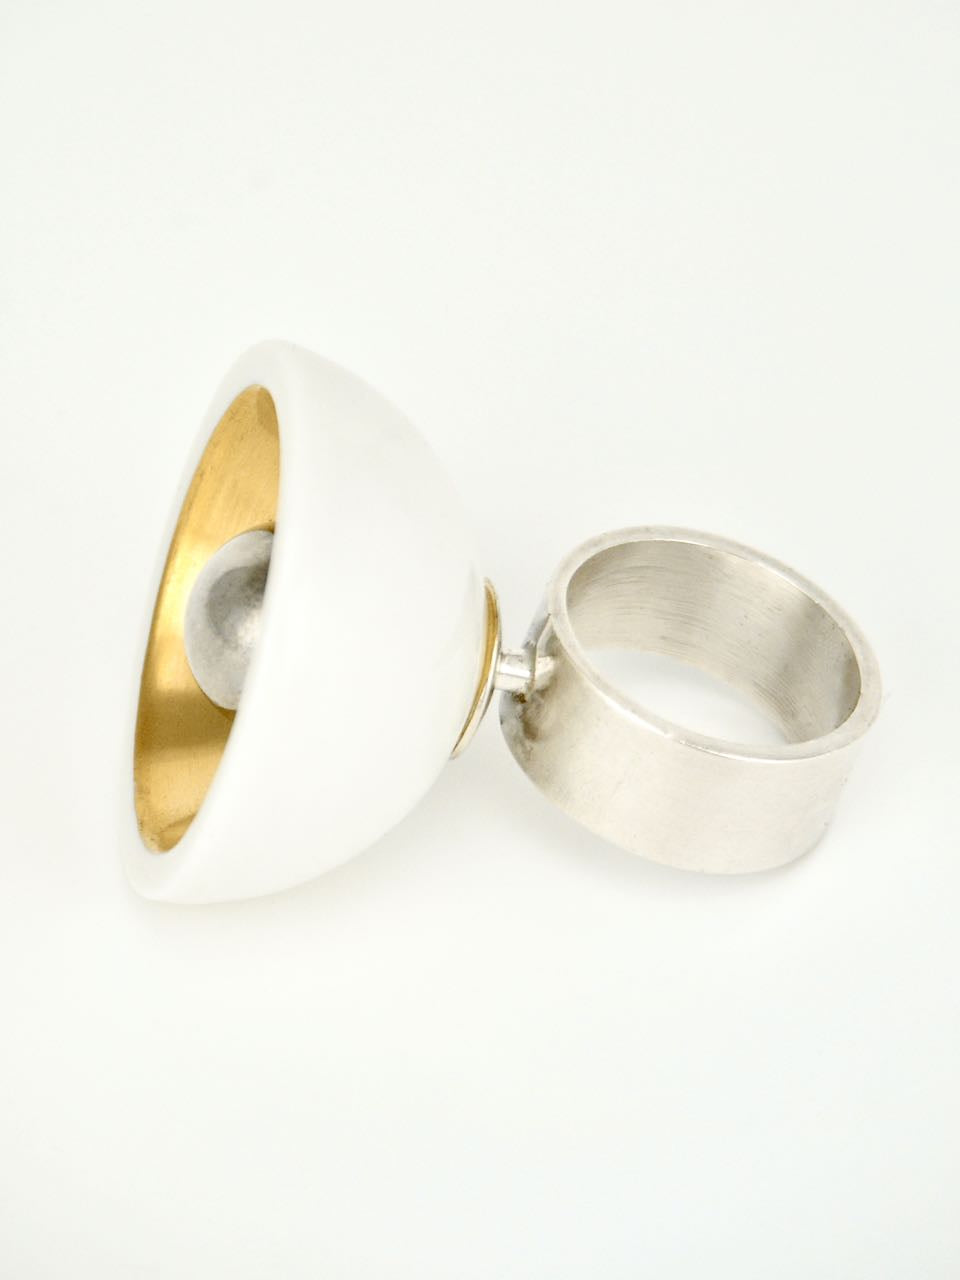 Anton Michelsen Silver and Gilded Porcelain Dish and Ball Ring 1970s